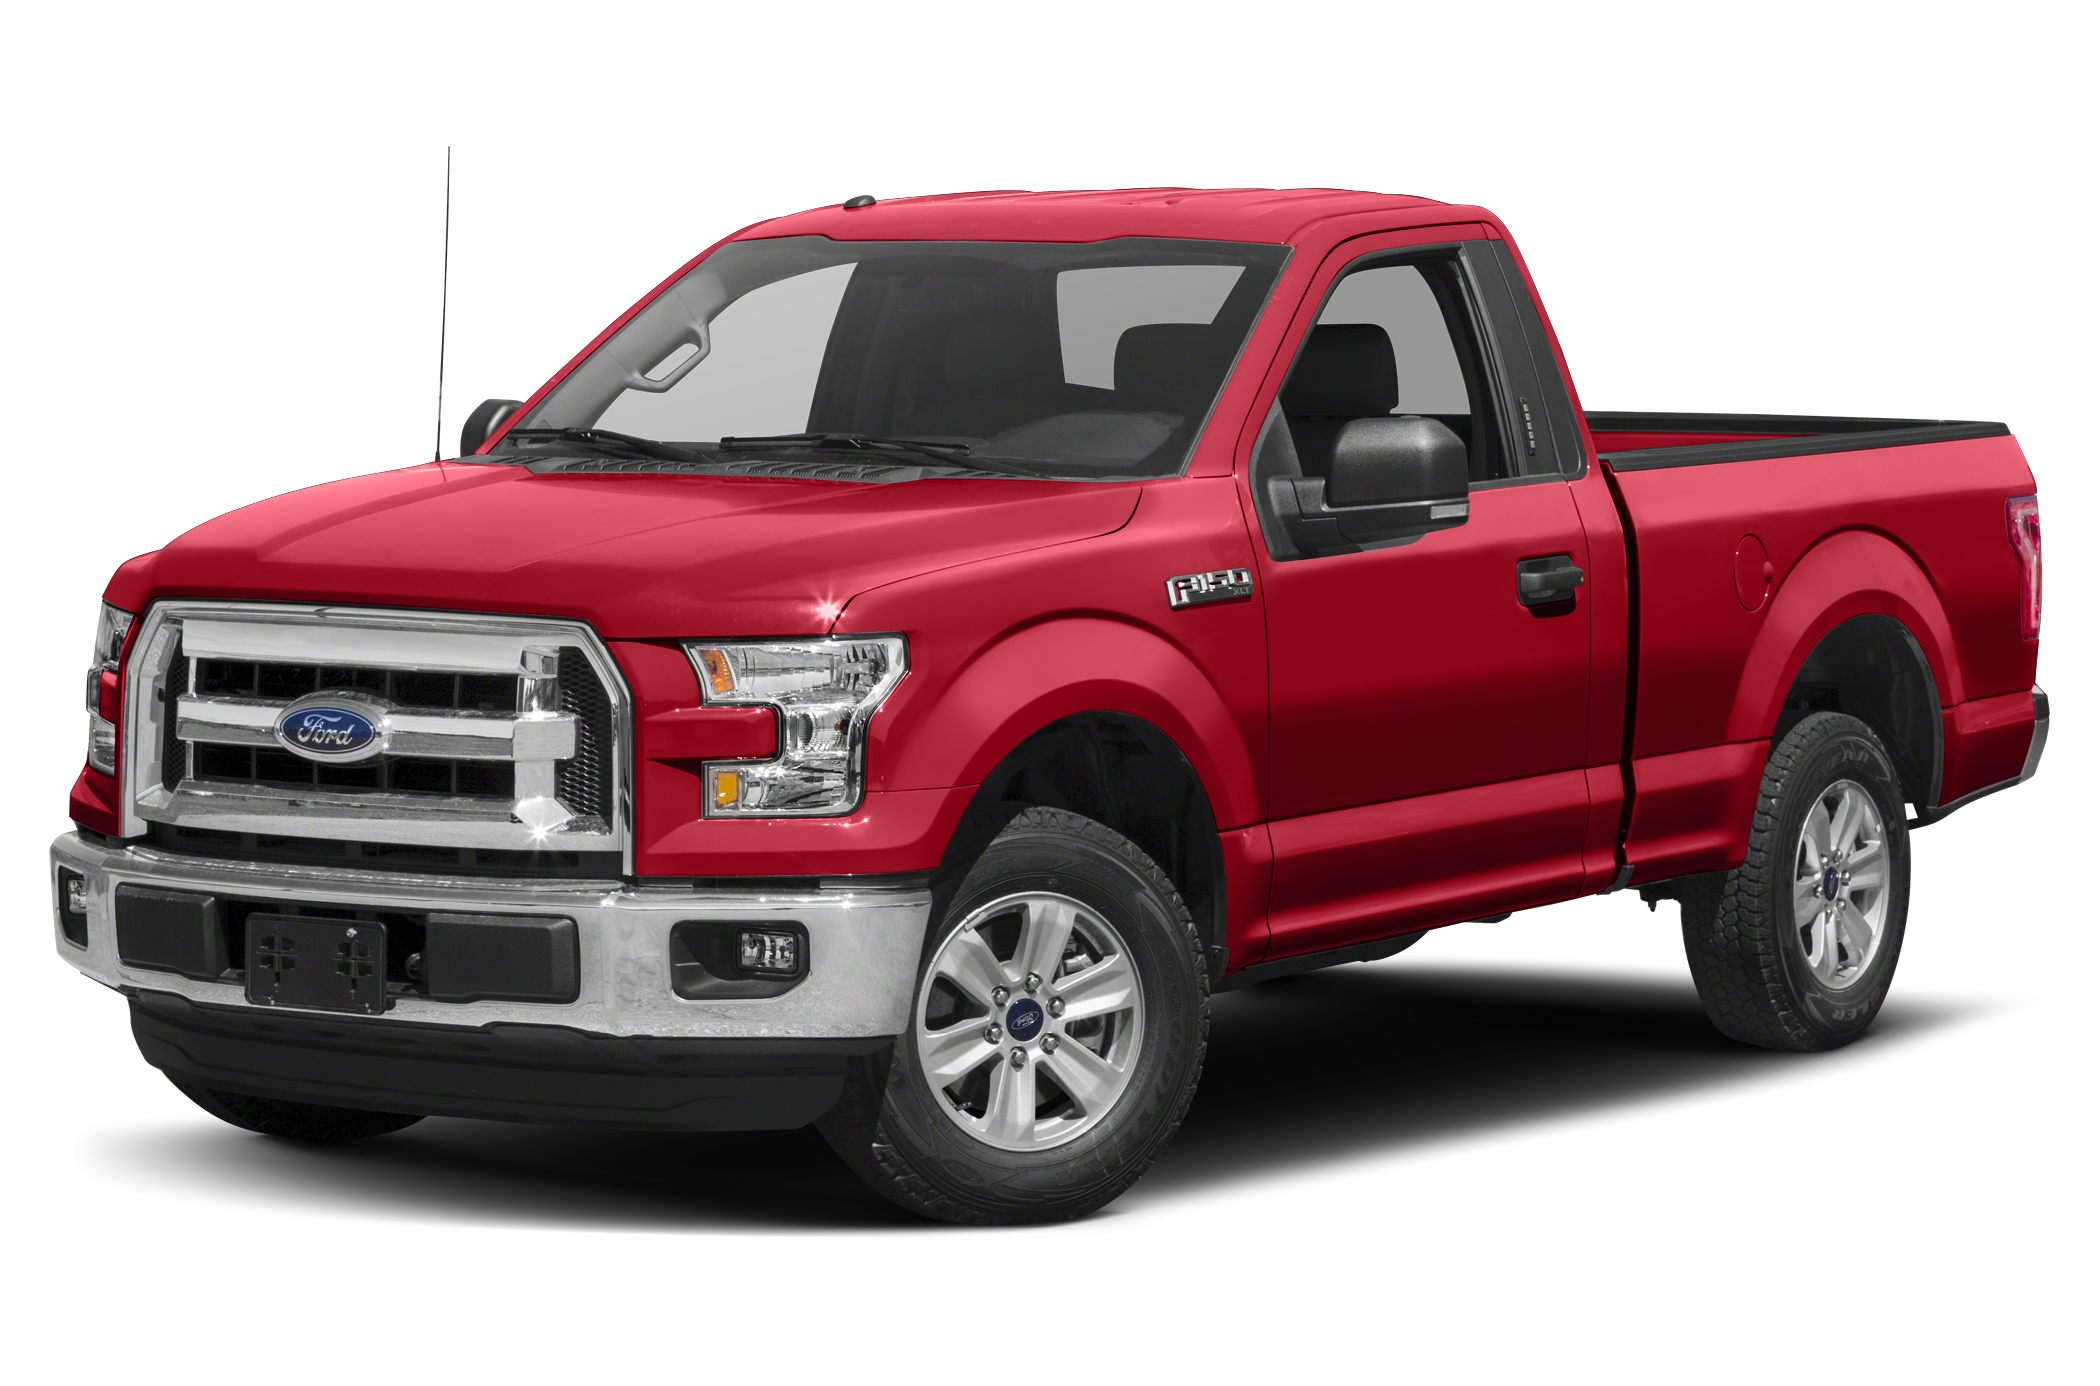 2016 Ford F-150 XLT 2 YEARS MAINTENANCE INCLUDED WITH EVERY VEHICLE PURCHASED This truck is the pe